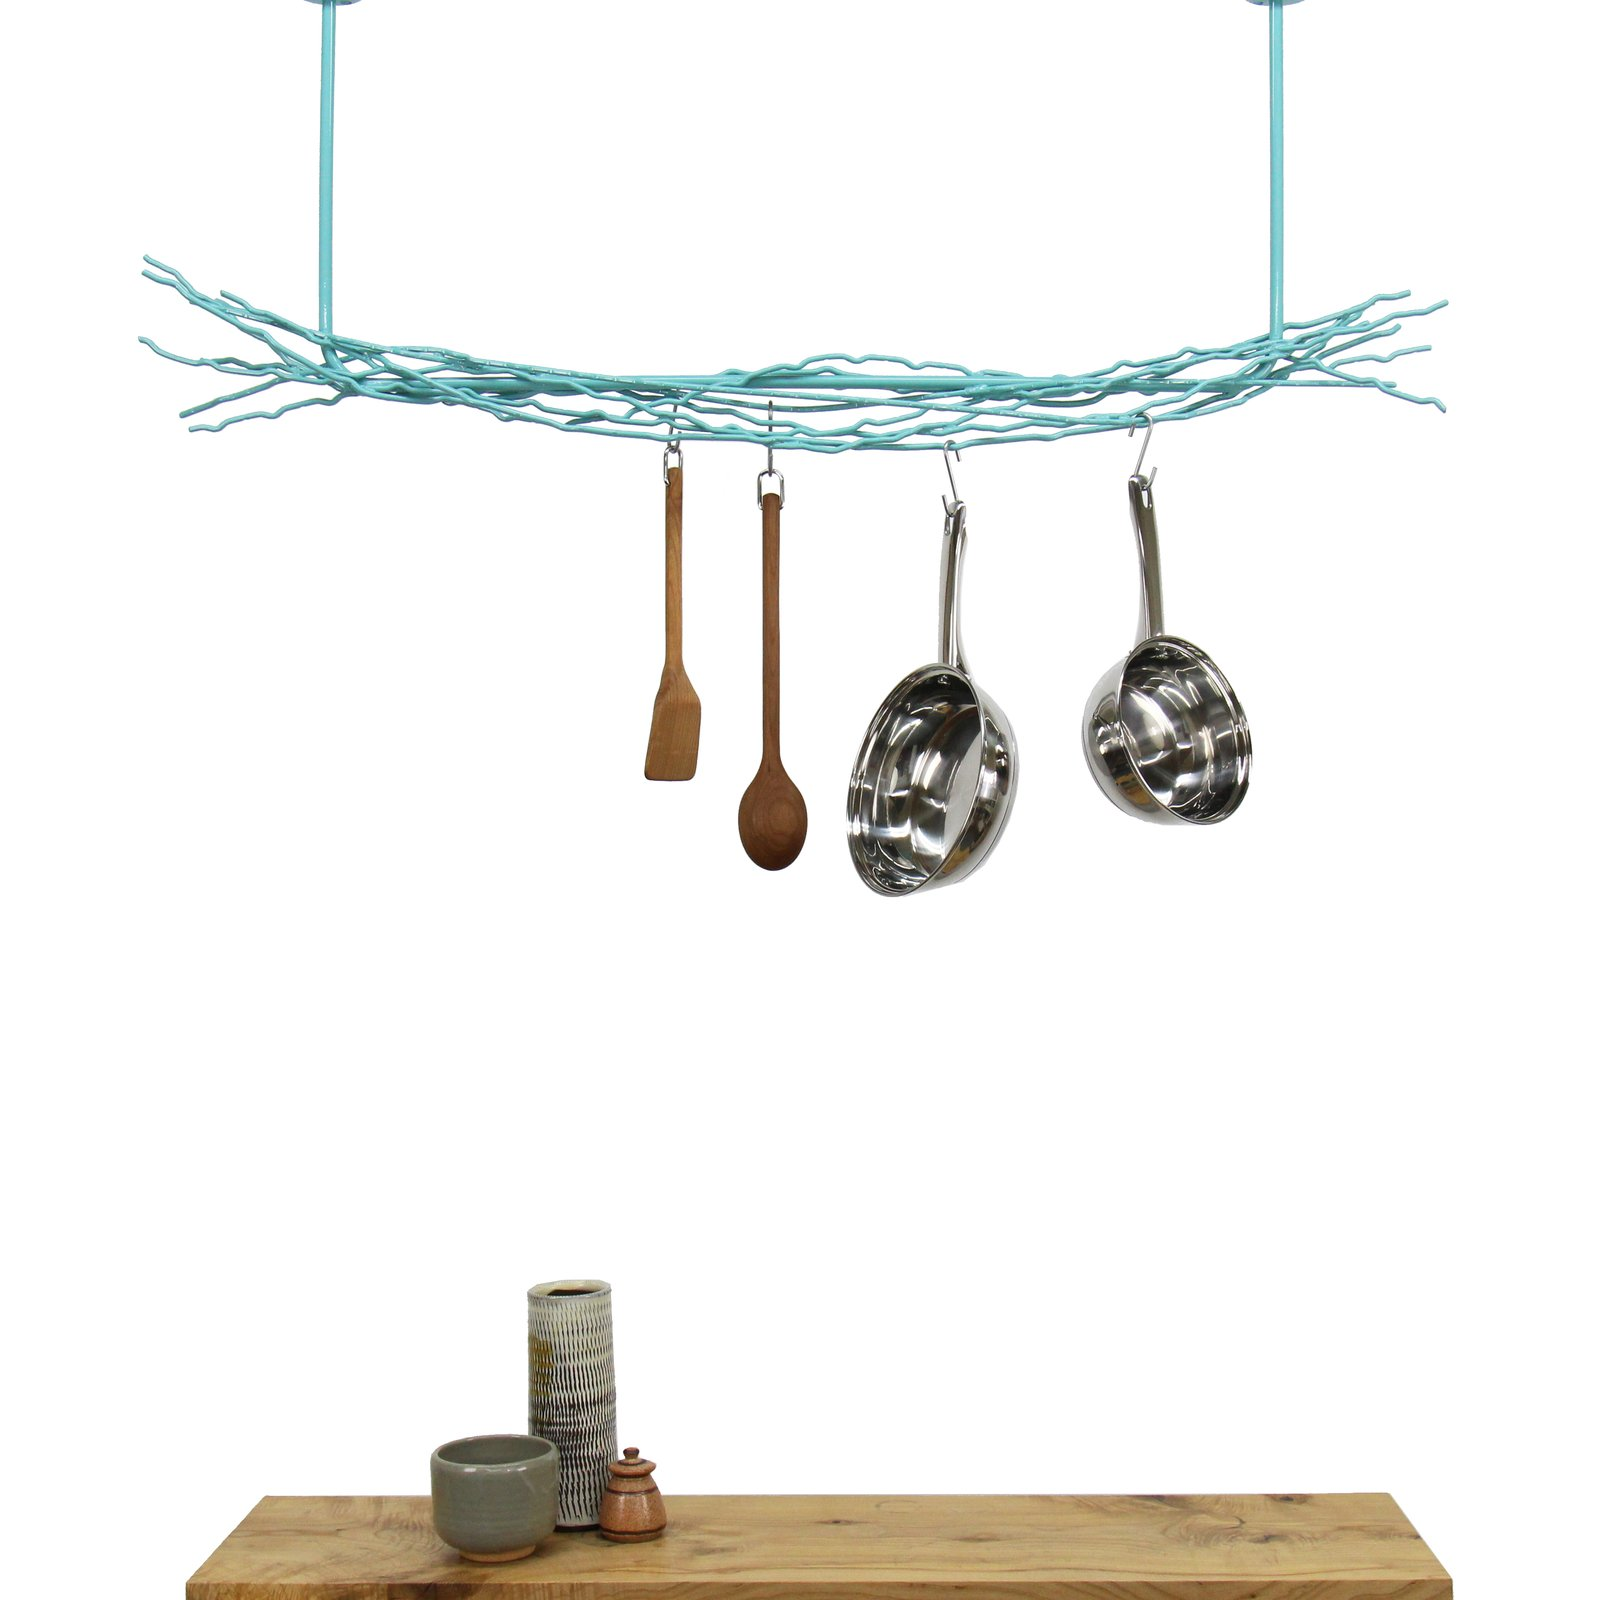 This modern pot rack from Merkled Studio is made from salvaged steel loom ends collected from a weaving company located only 10 blocks from the designer's studio. Able to hold even the heaviest cast-iron skillet, each organic piece has also been powder-coated for durability.  Photo 8 of 12 in 10 Functional Pieces For Small Space Living